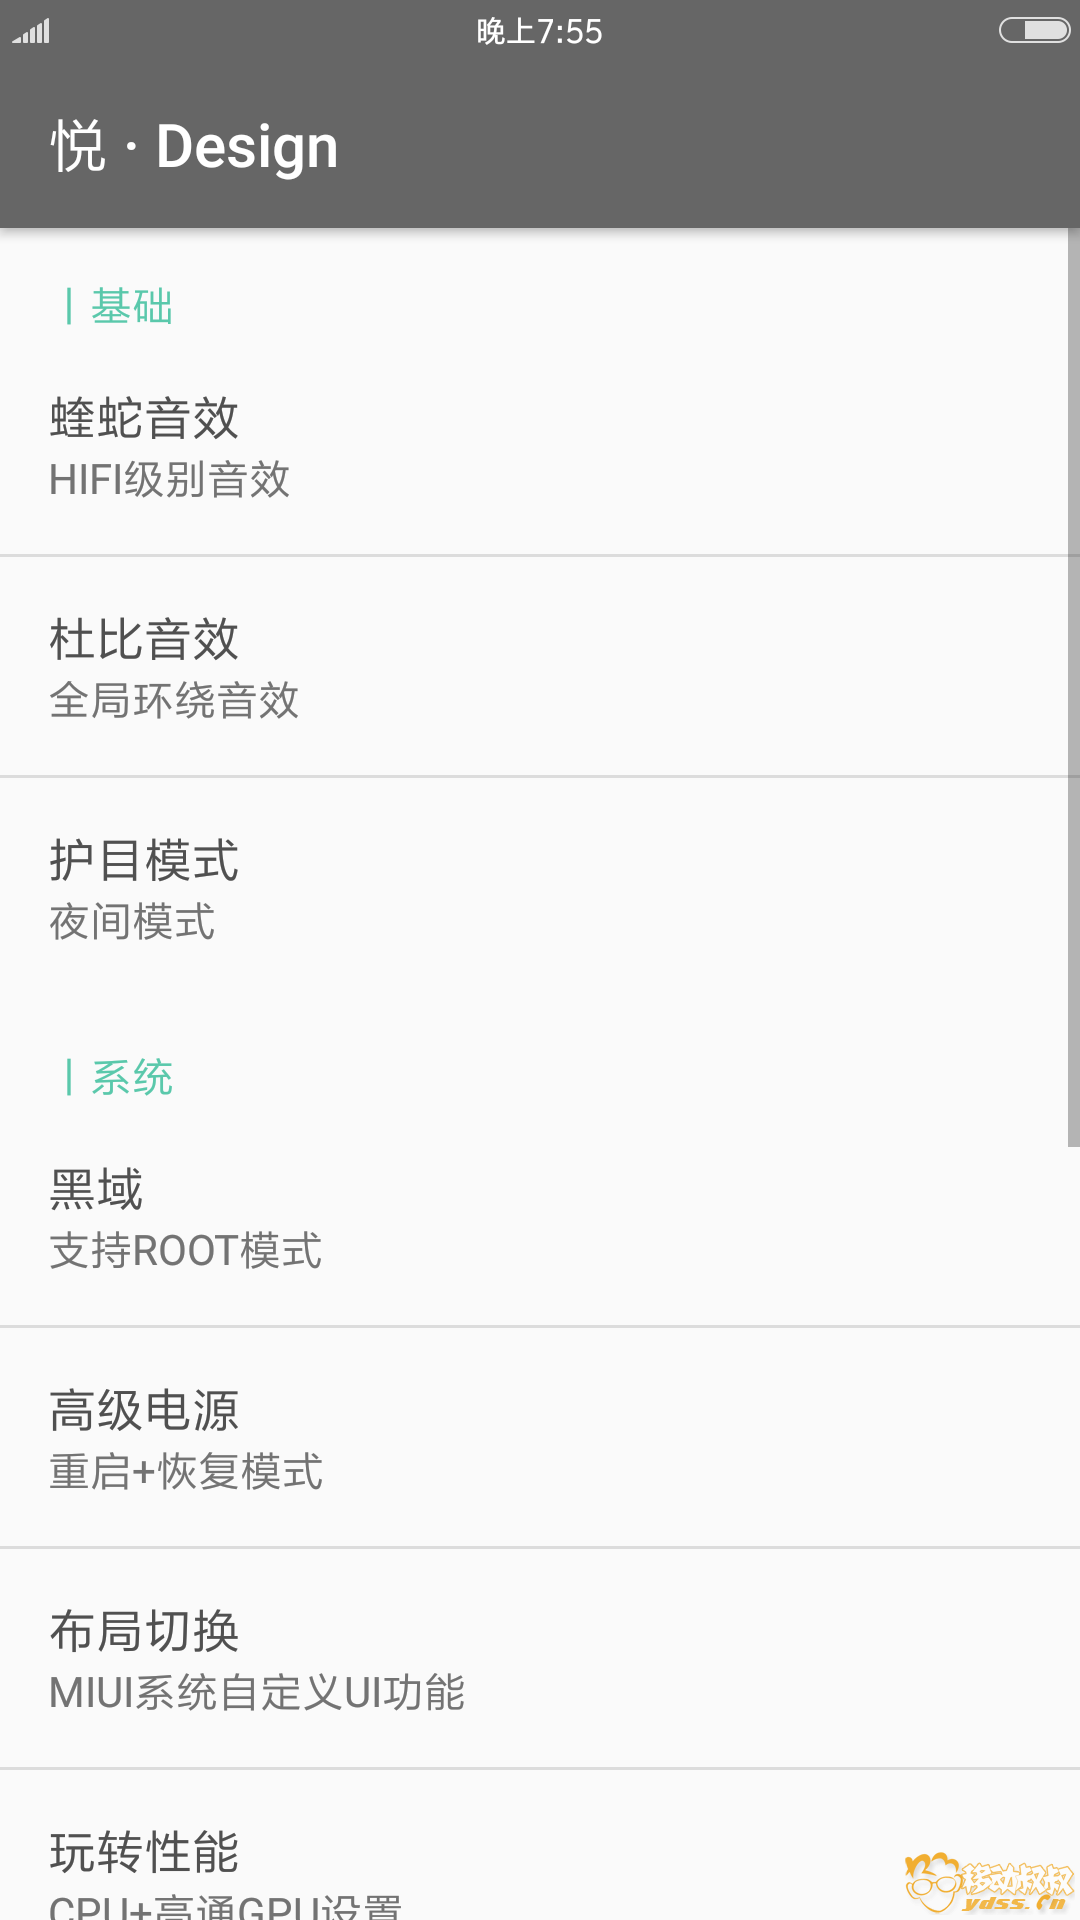 Screenshot_2017-11-12-19-55-07-681_settings.mrxy.myapplication.png